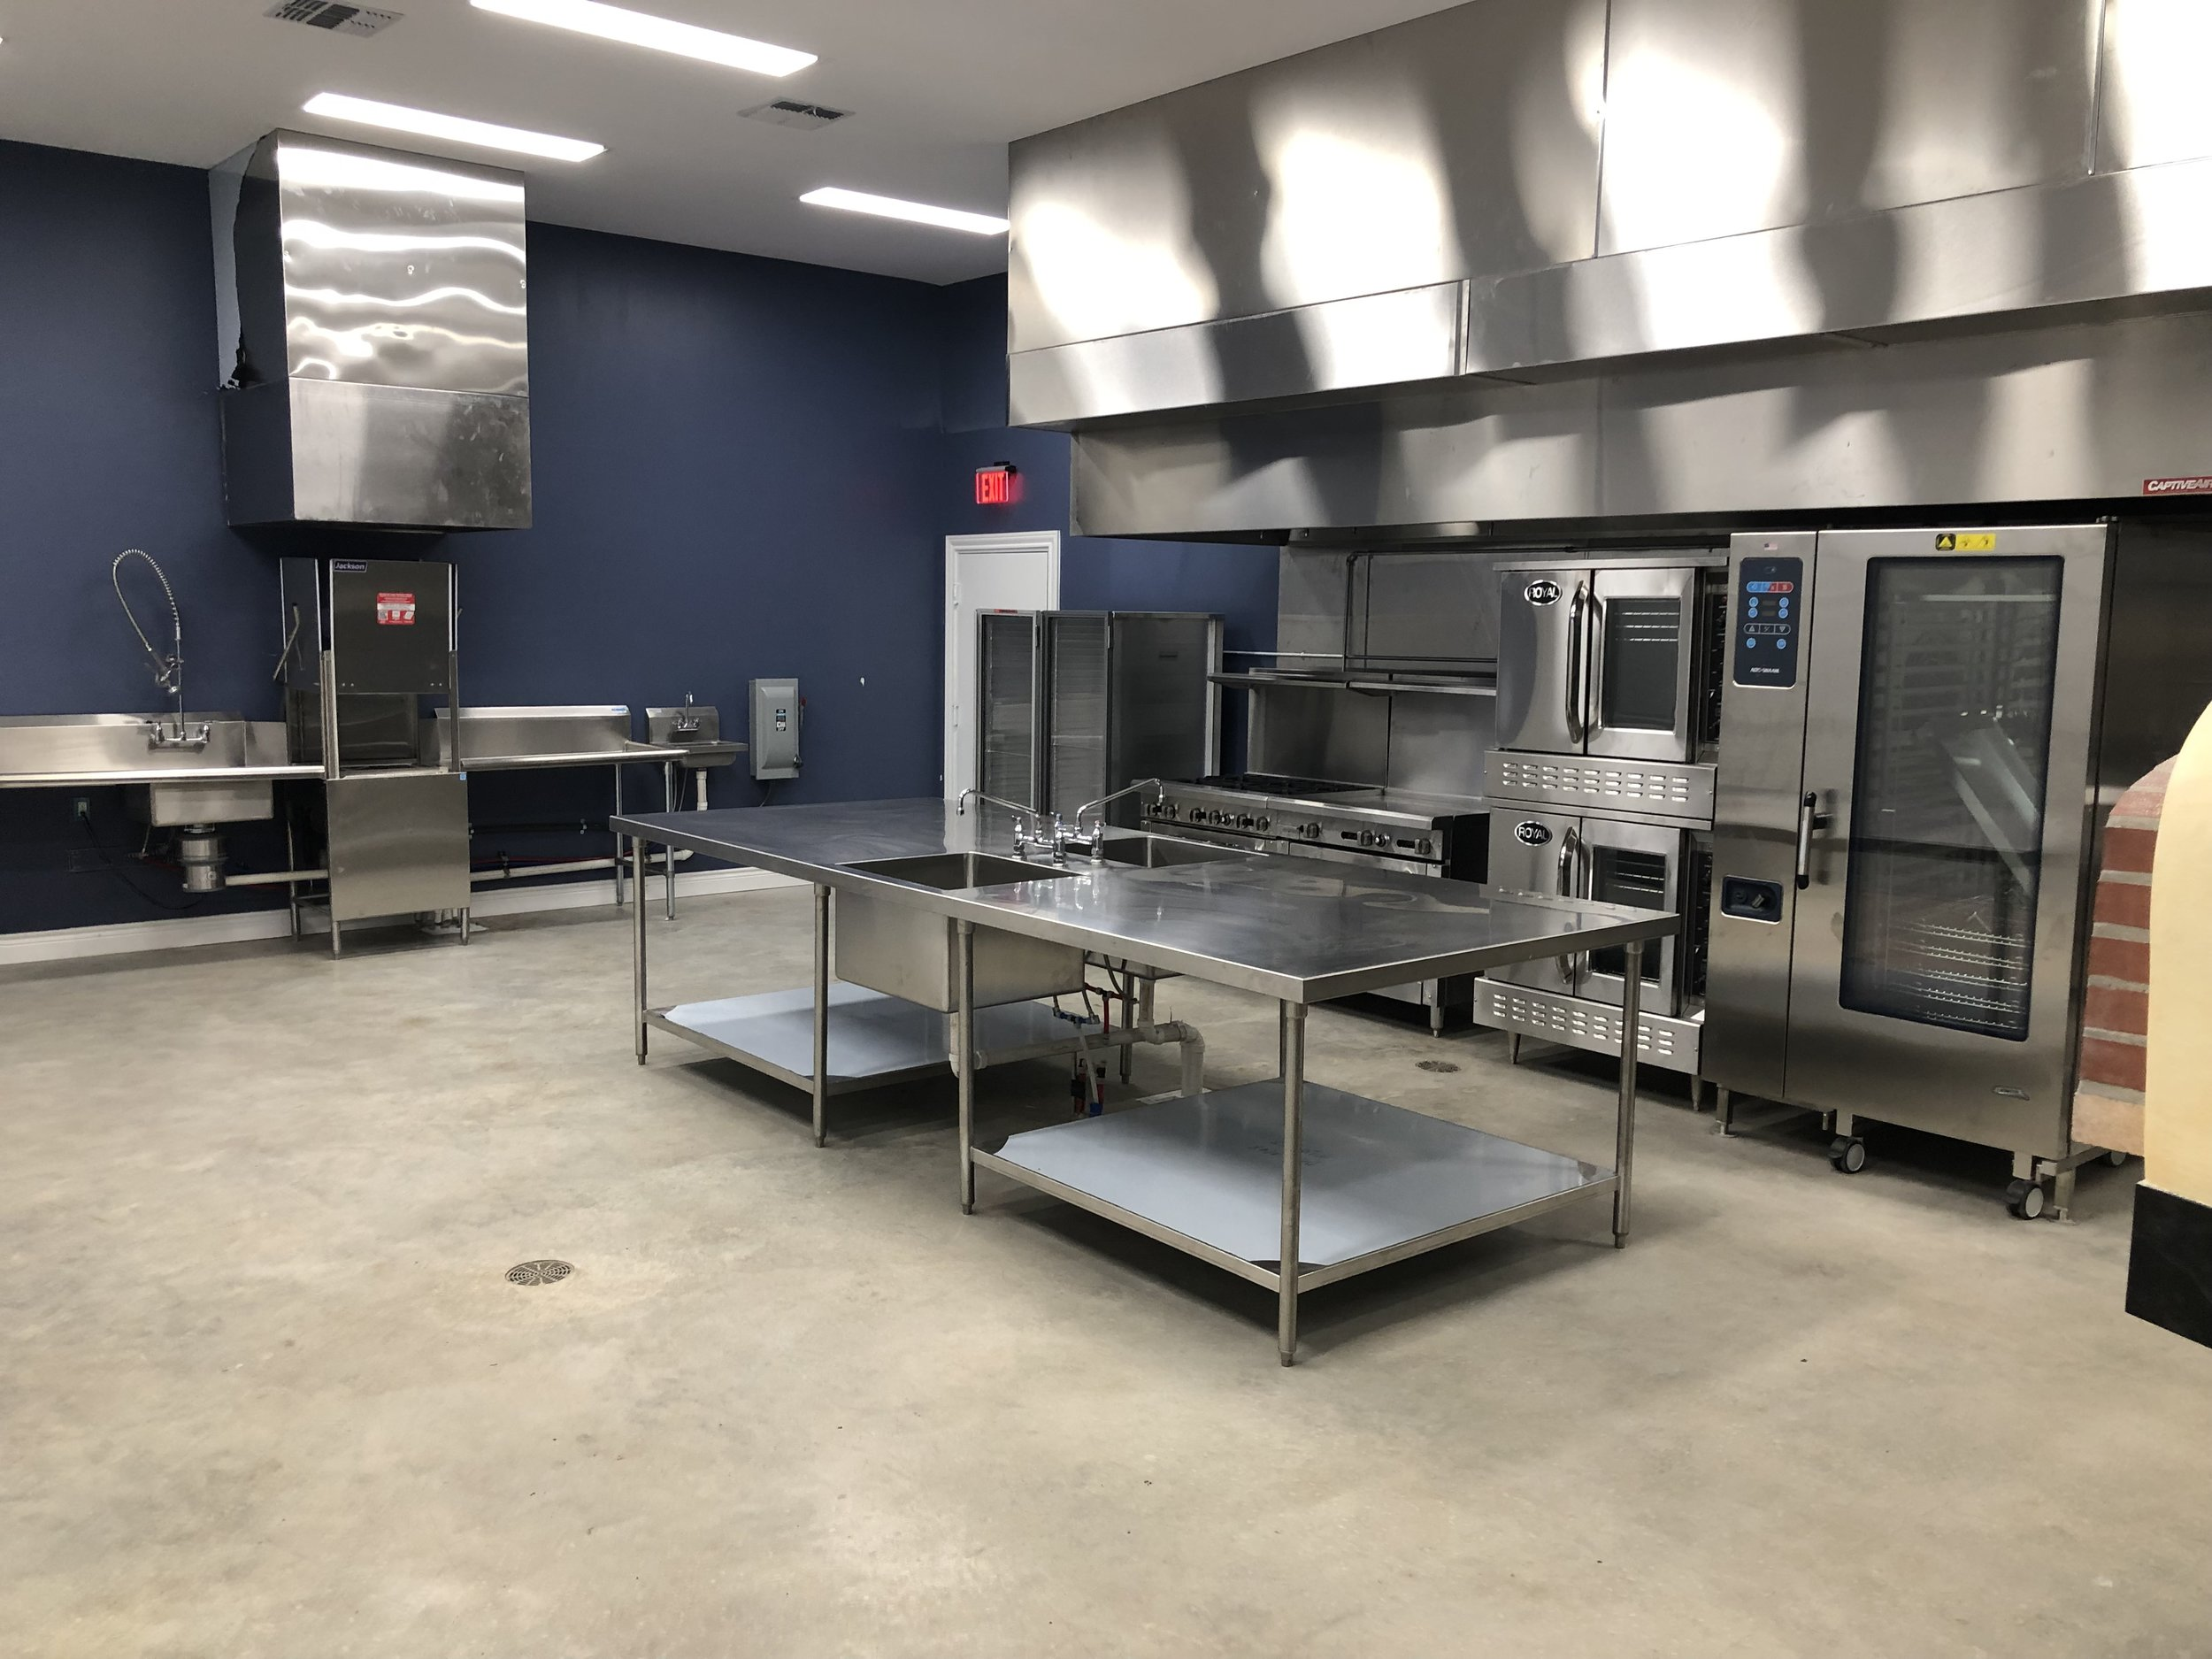 FarmResort Commercial Kitchen with Stoves and Dishwasher.jpg